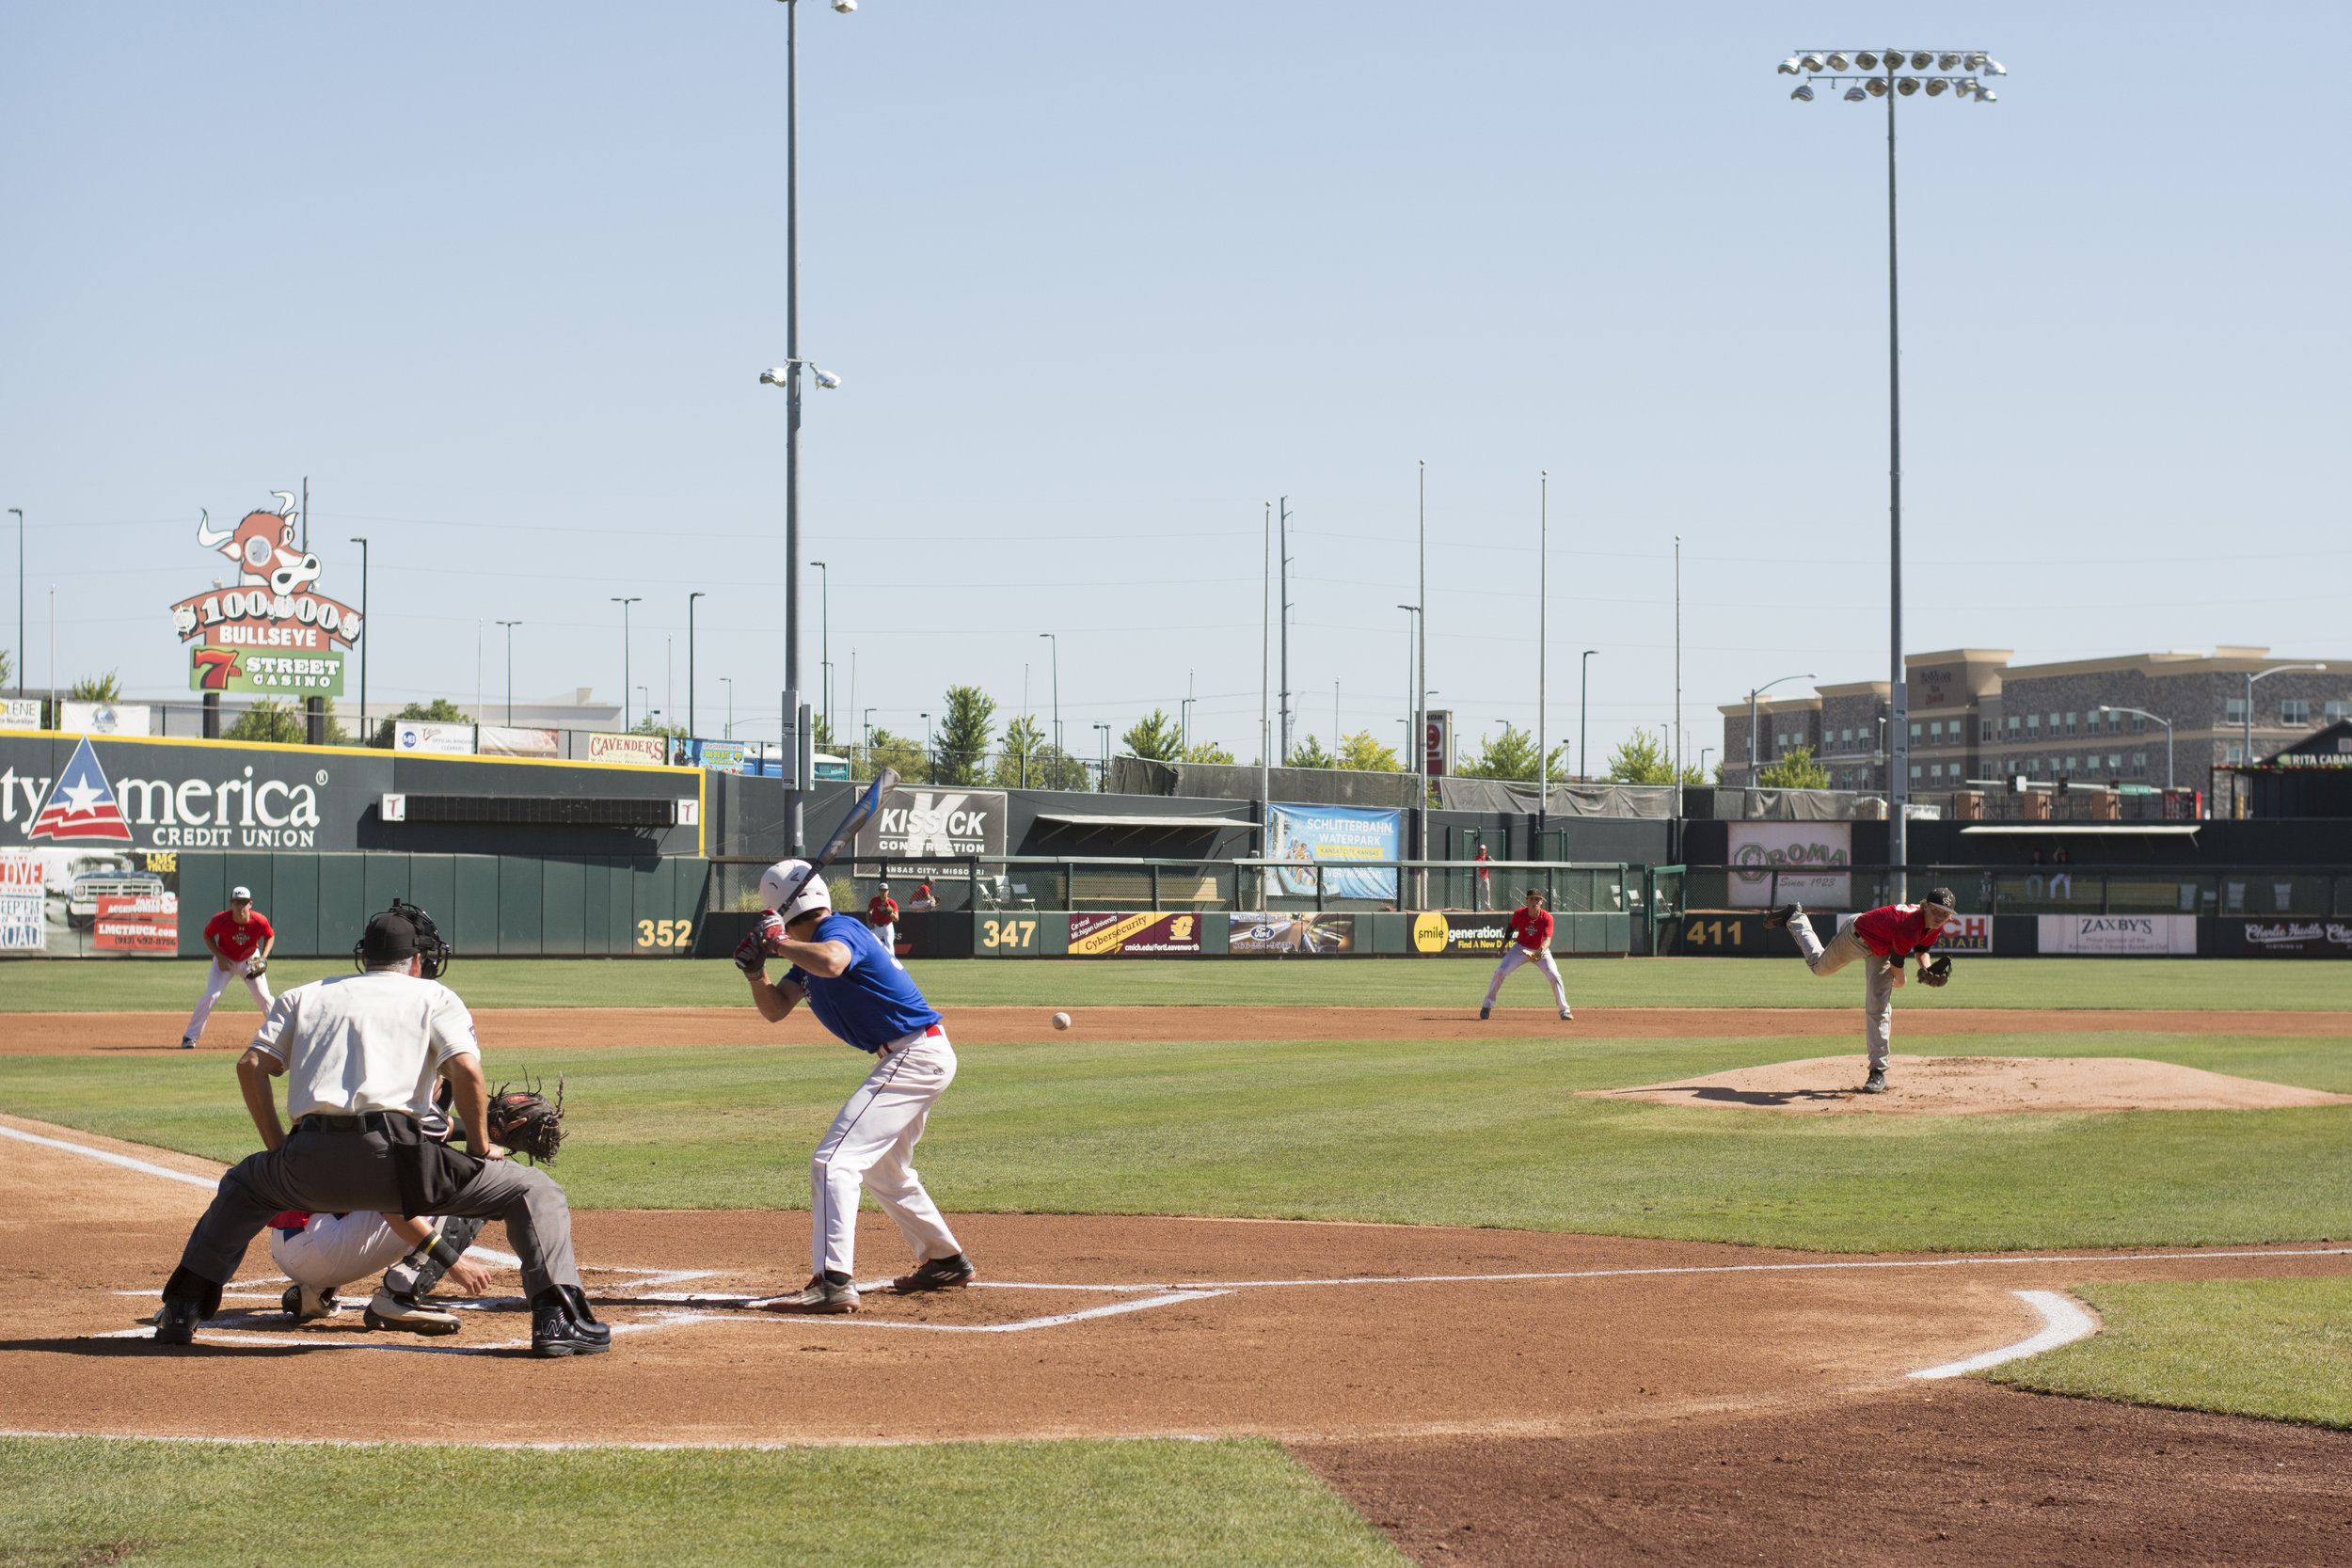 Best in the West Showcase - Phoenix Municipal Stadium -Phoenix, ArizonaOctober 13th, 2019